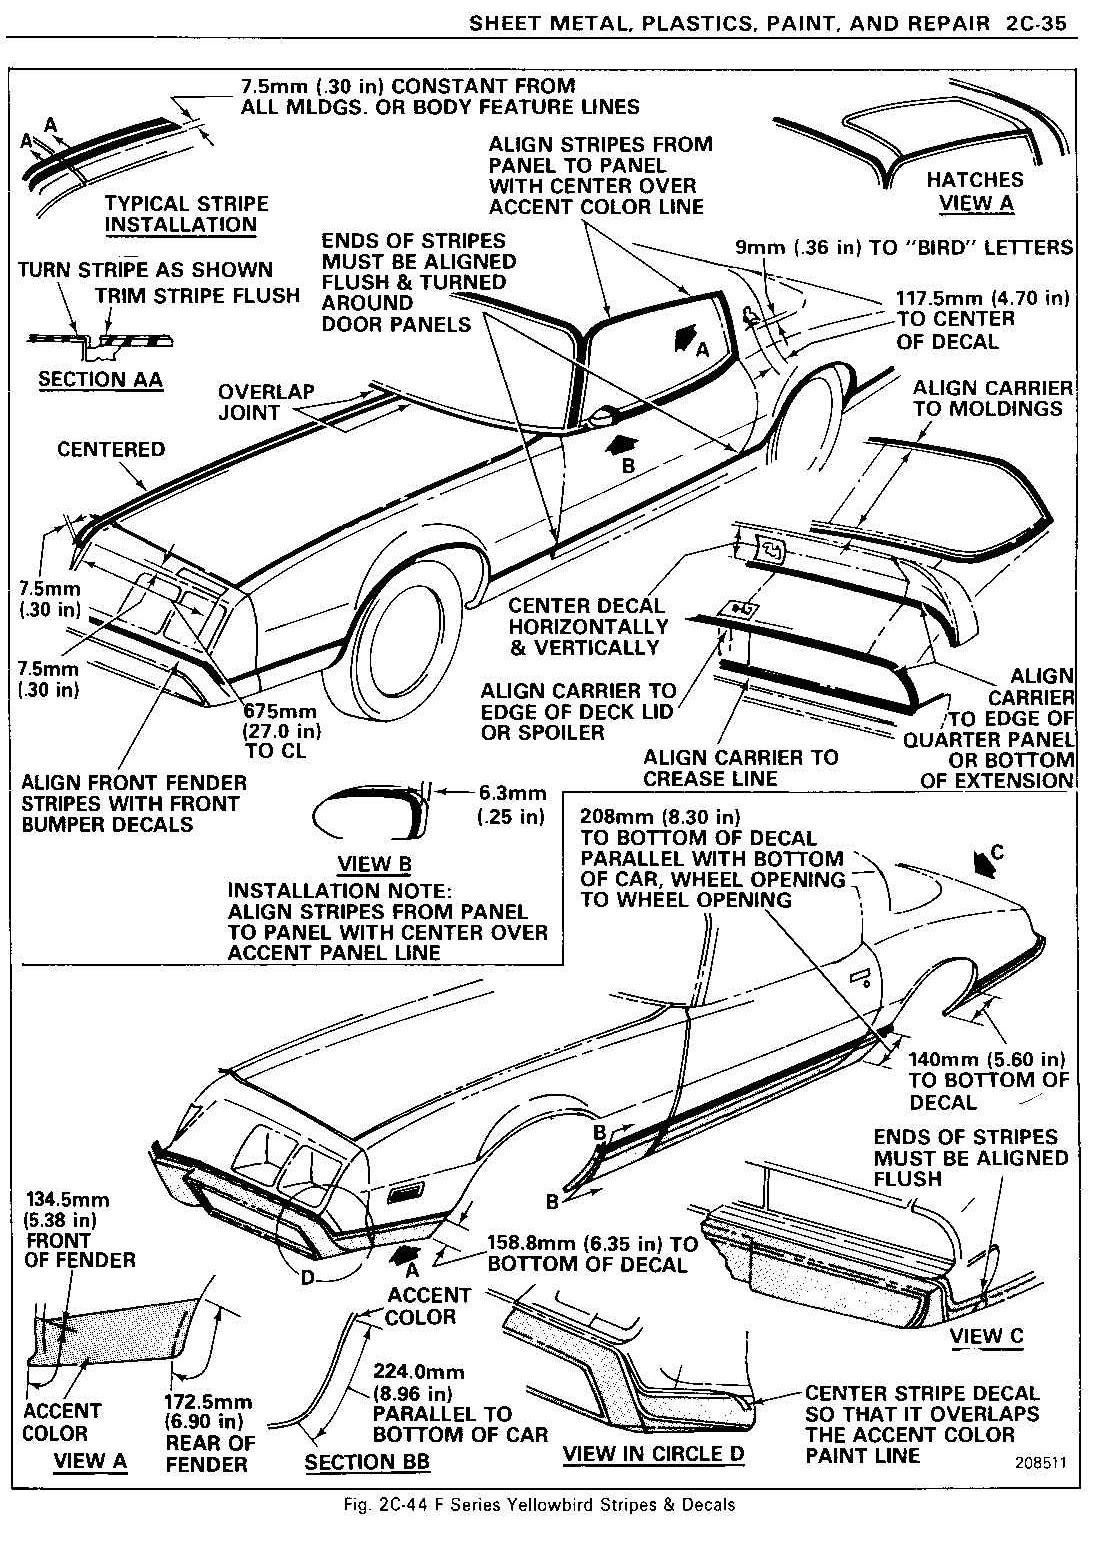 hummer ke diagram